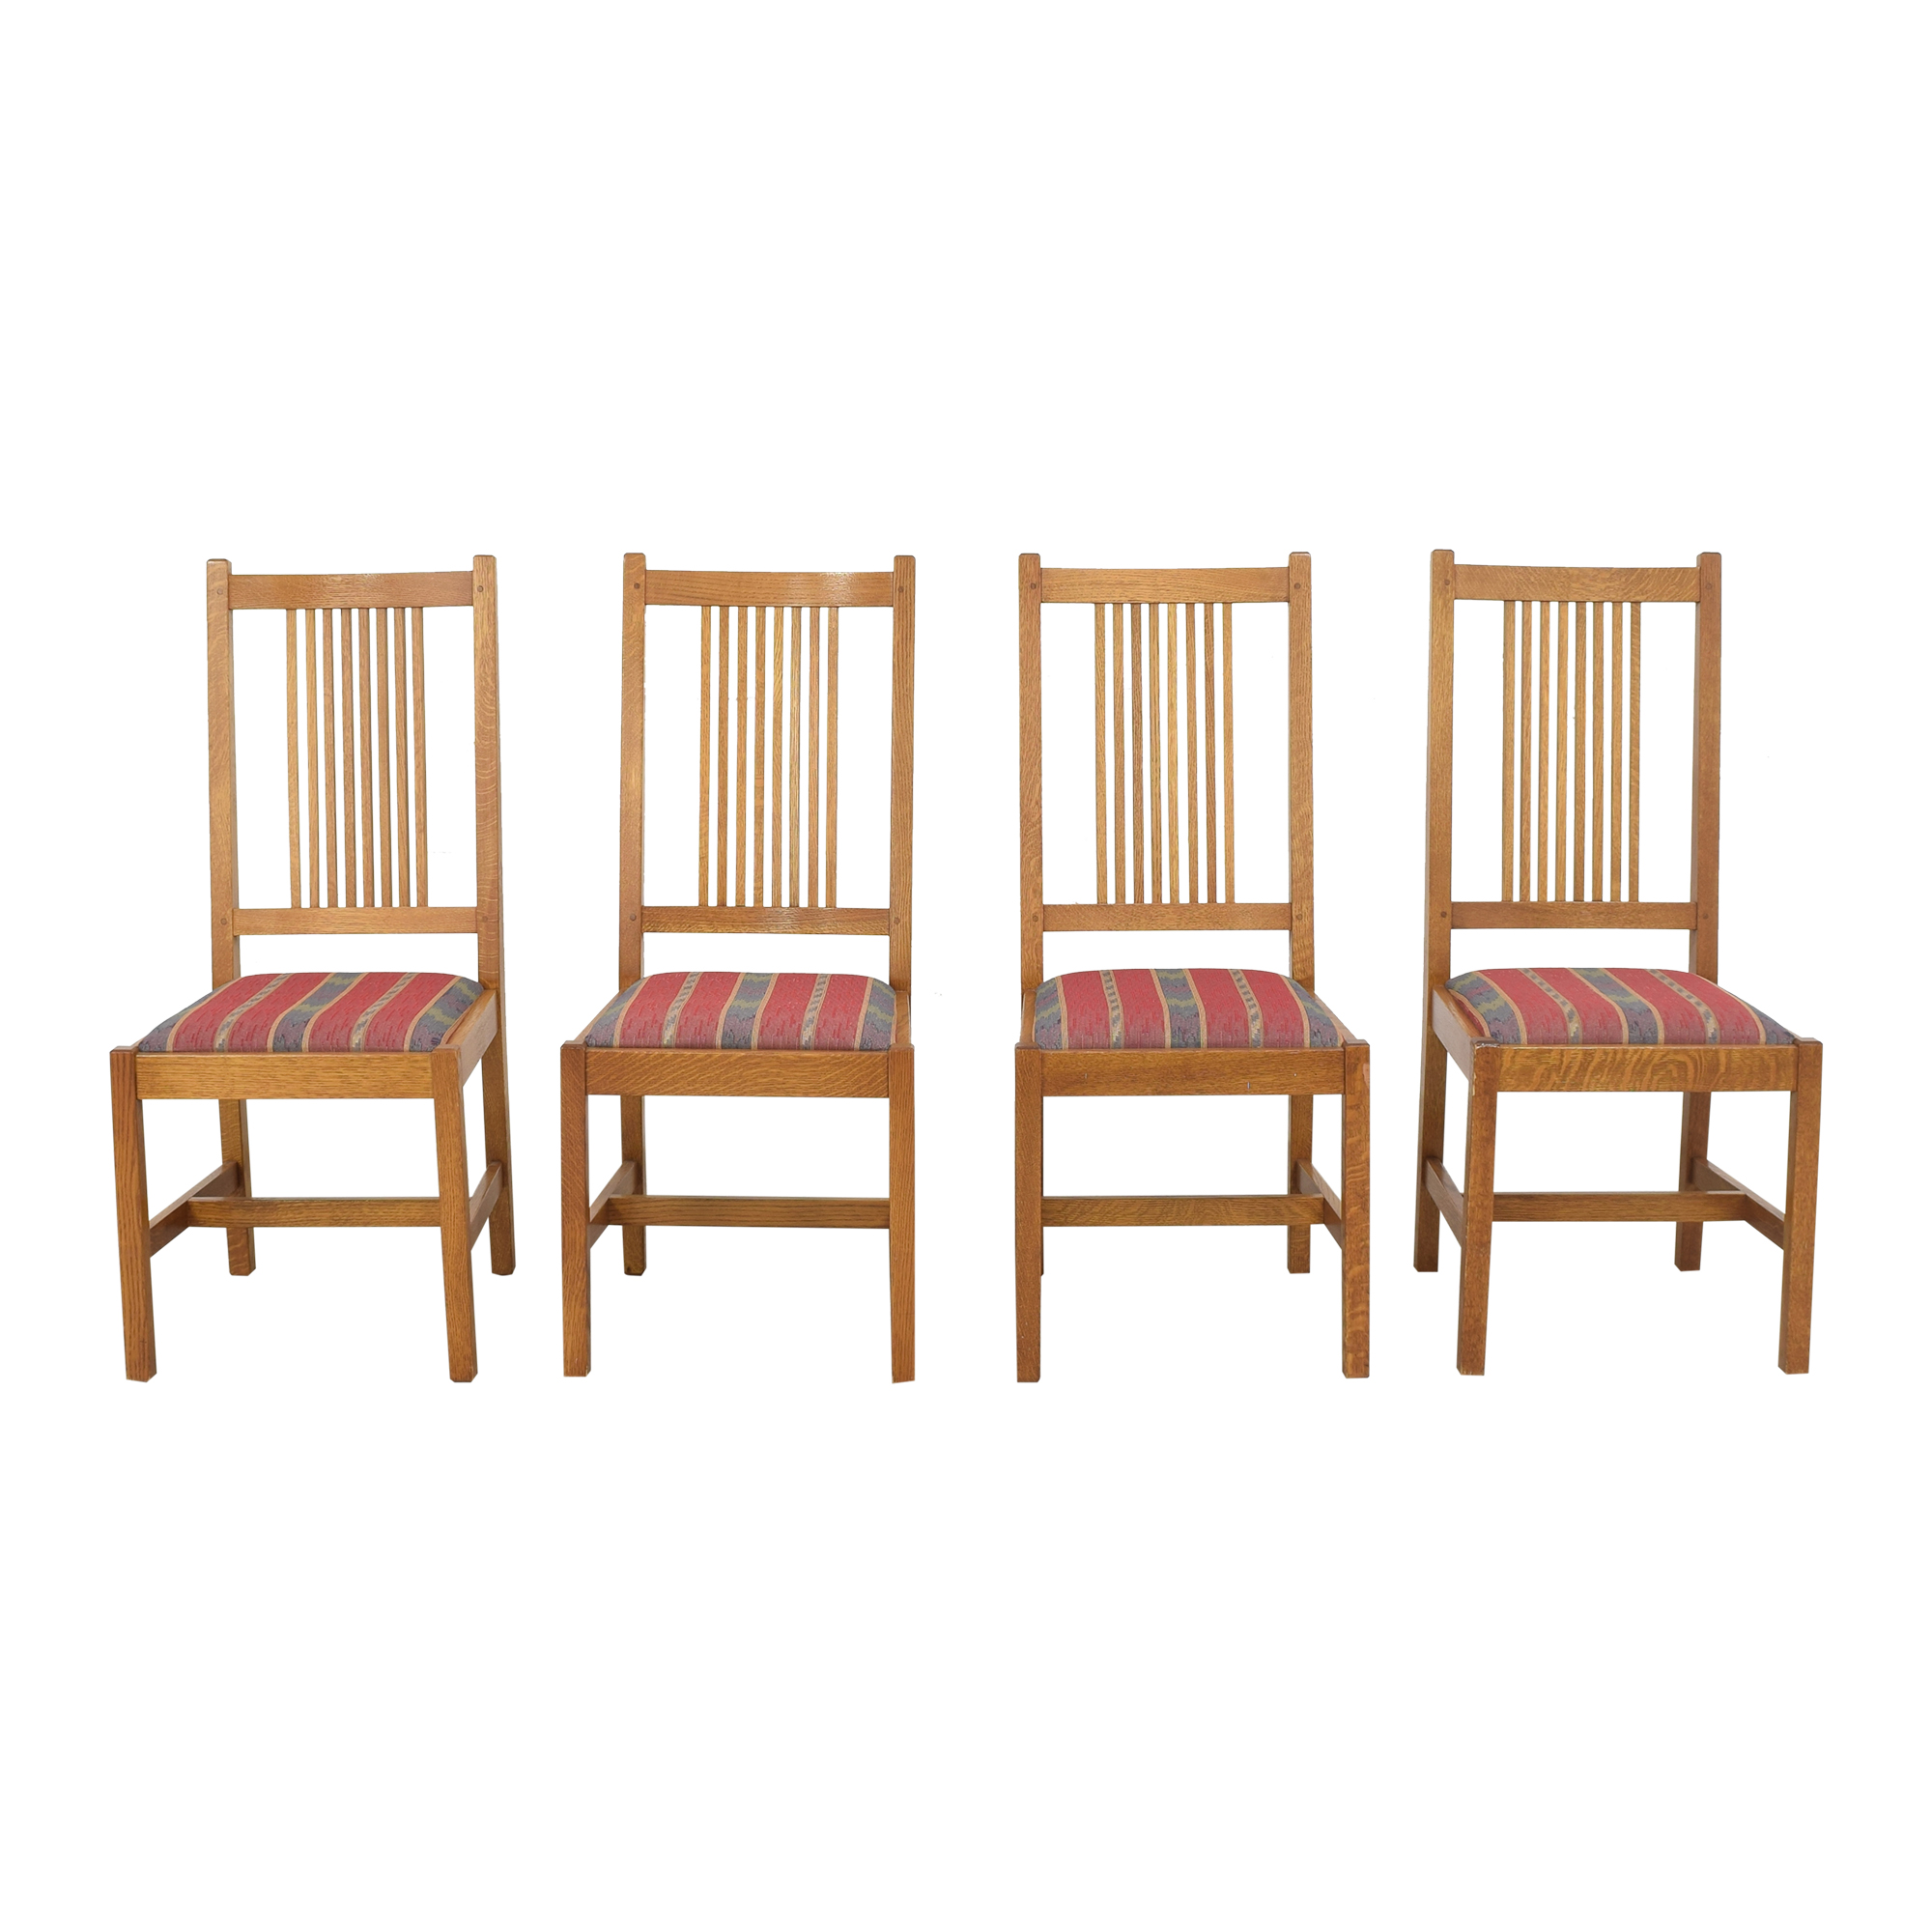 Stickley Furniture Stickley Furniture Mission Side Chairs used